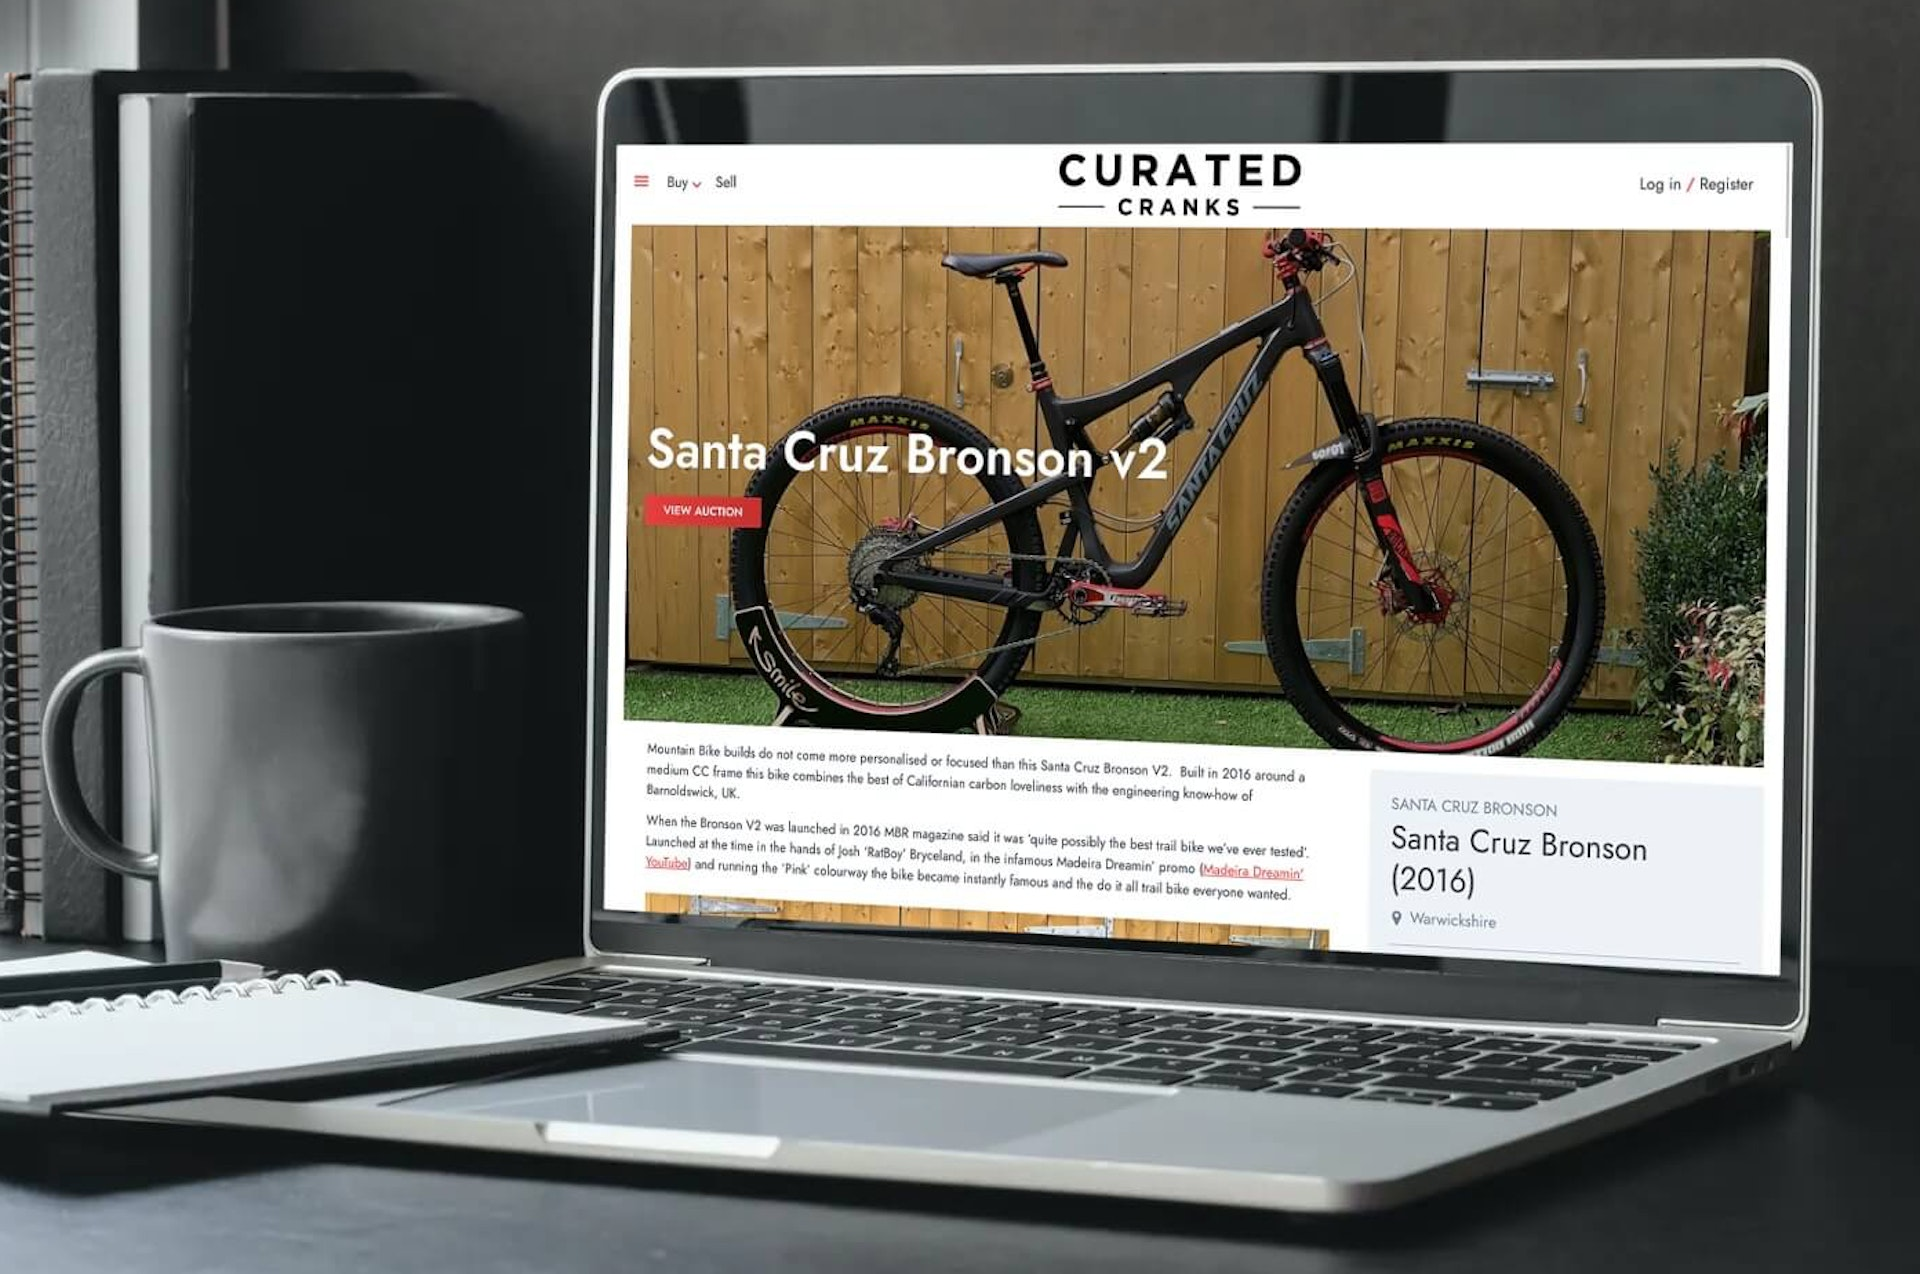 Curated cranks website displayed on laptop